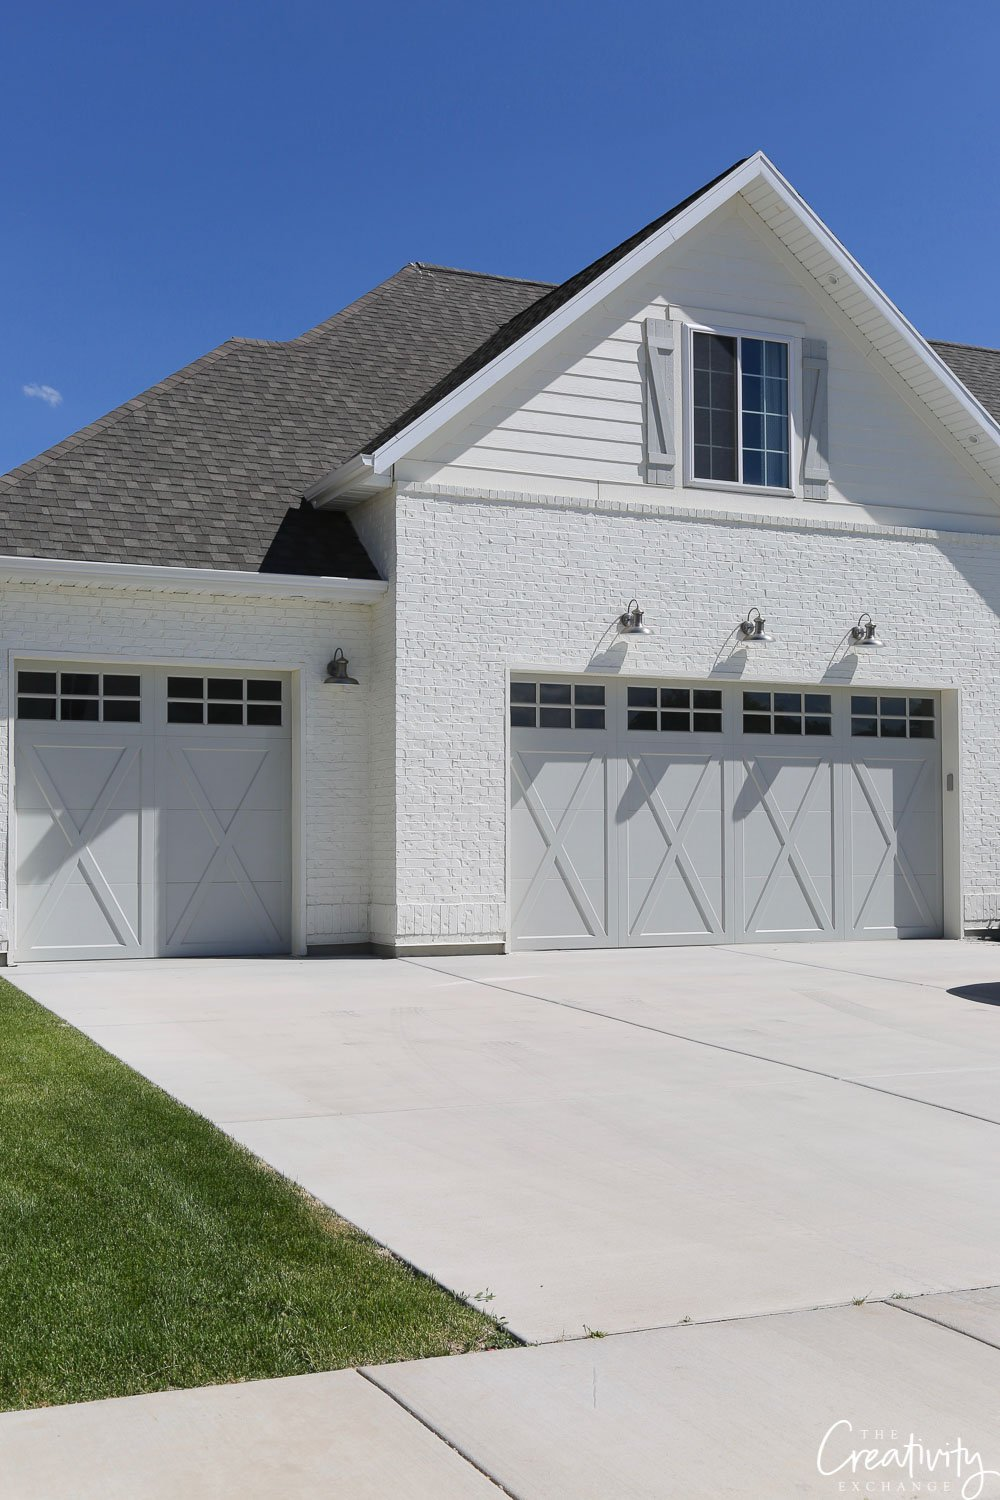 Painted brick exterior garages.